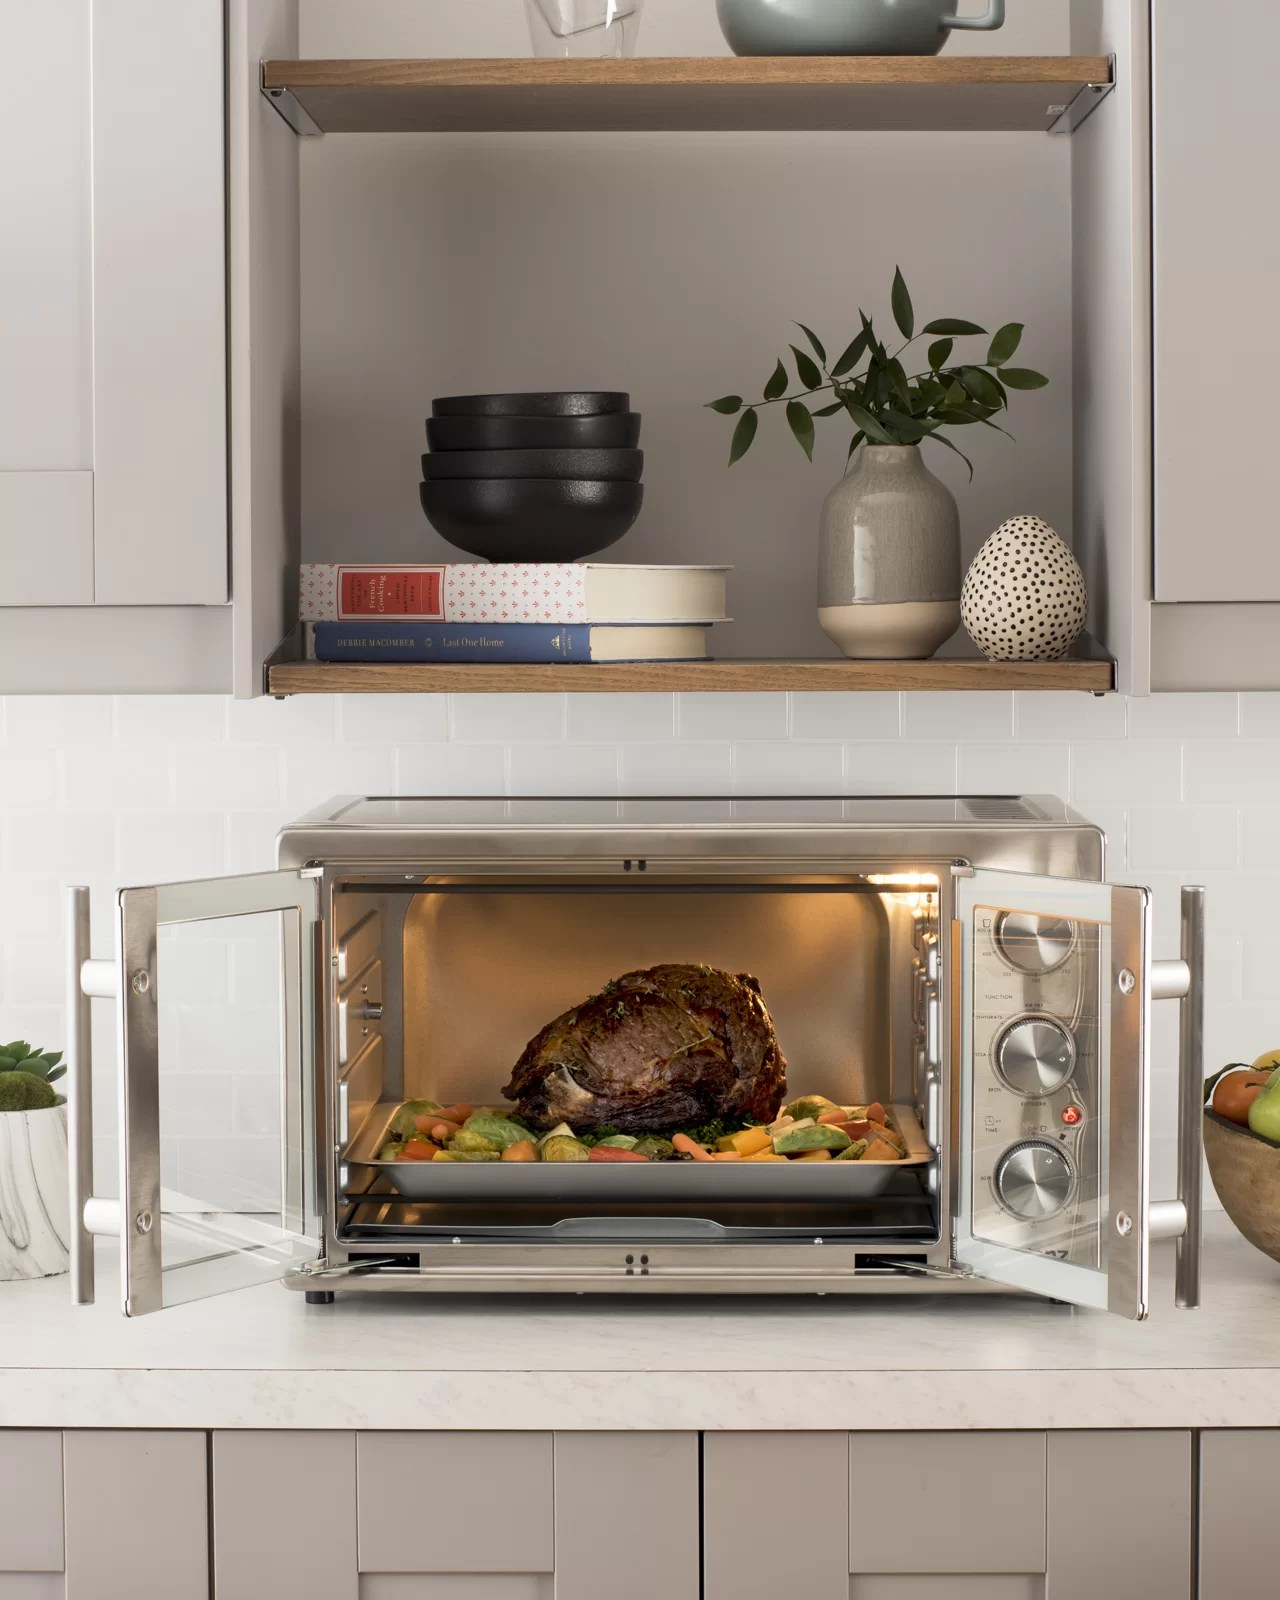 galanz french door air fryer toaster oven